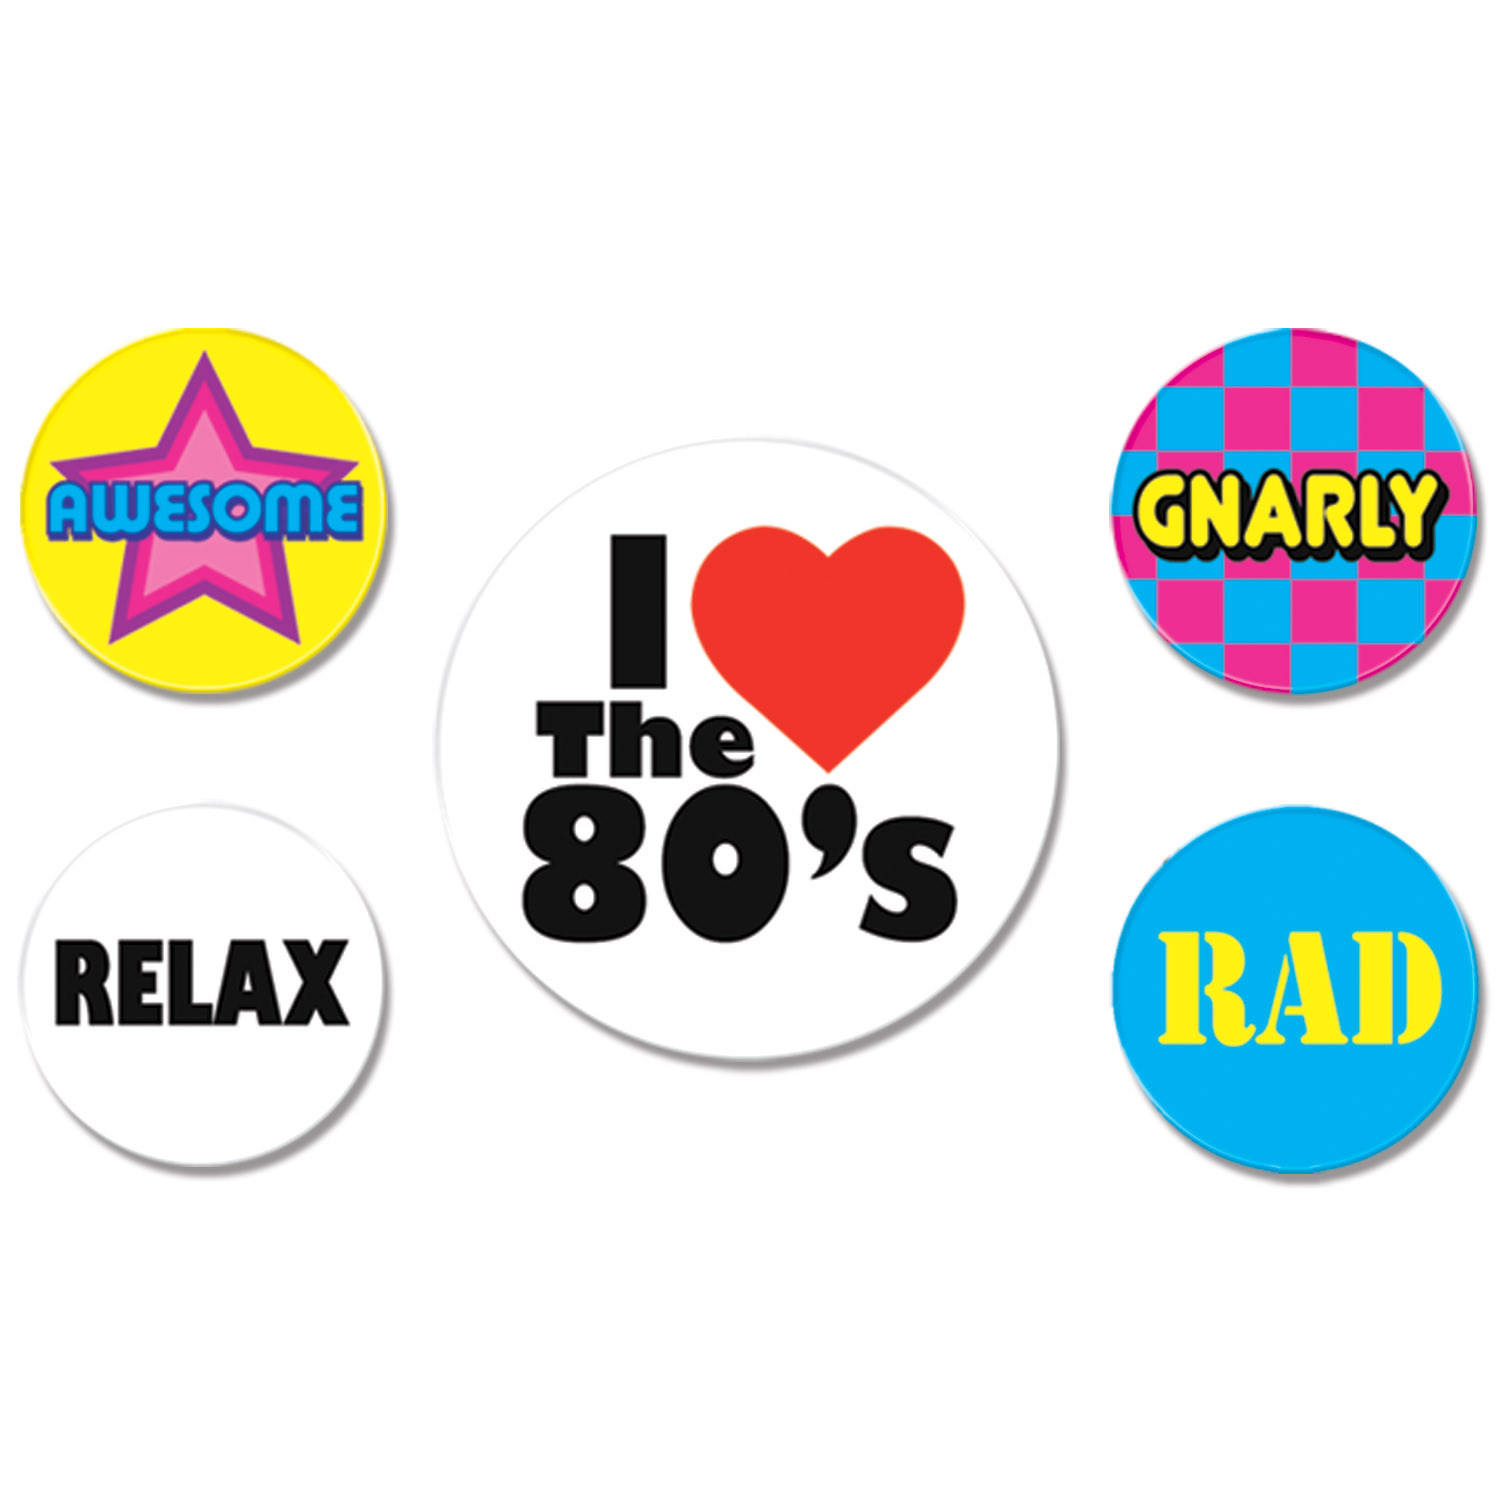 1980s buttons that say I love the 80s, gnarly, rad, relax